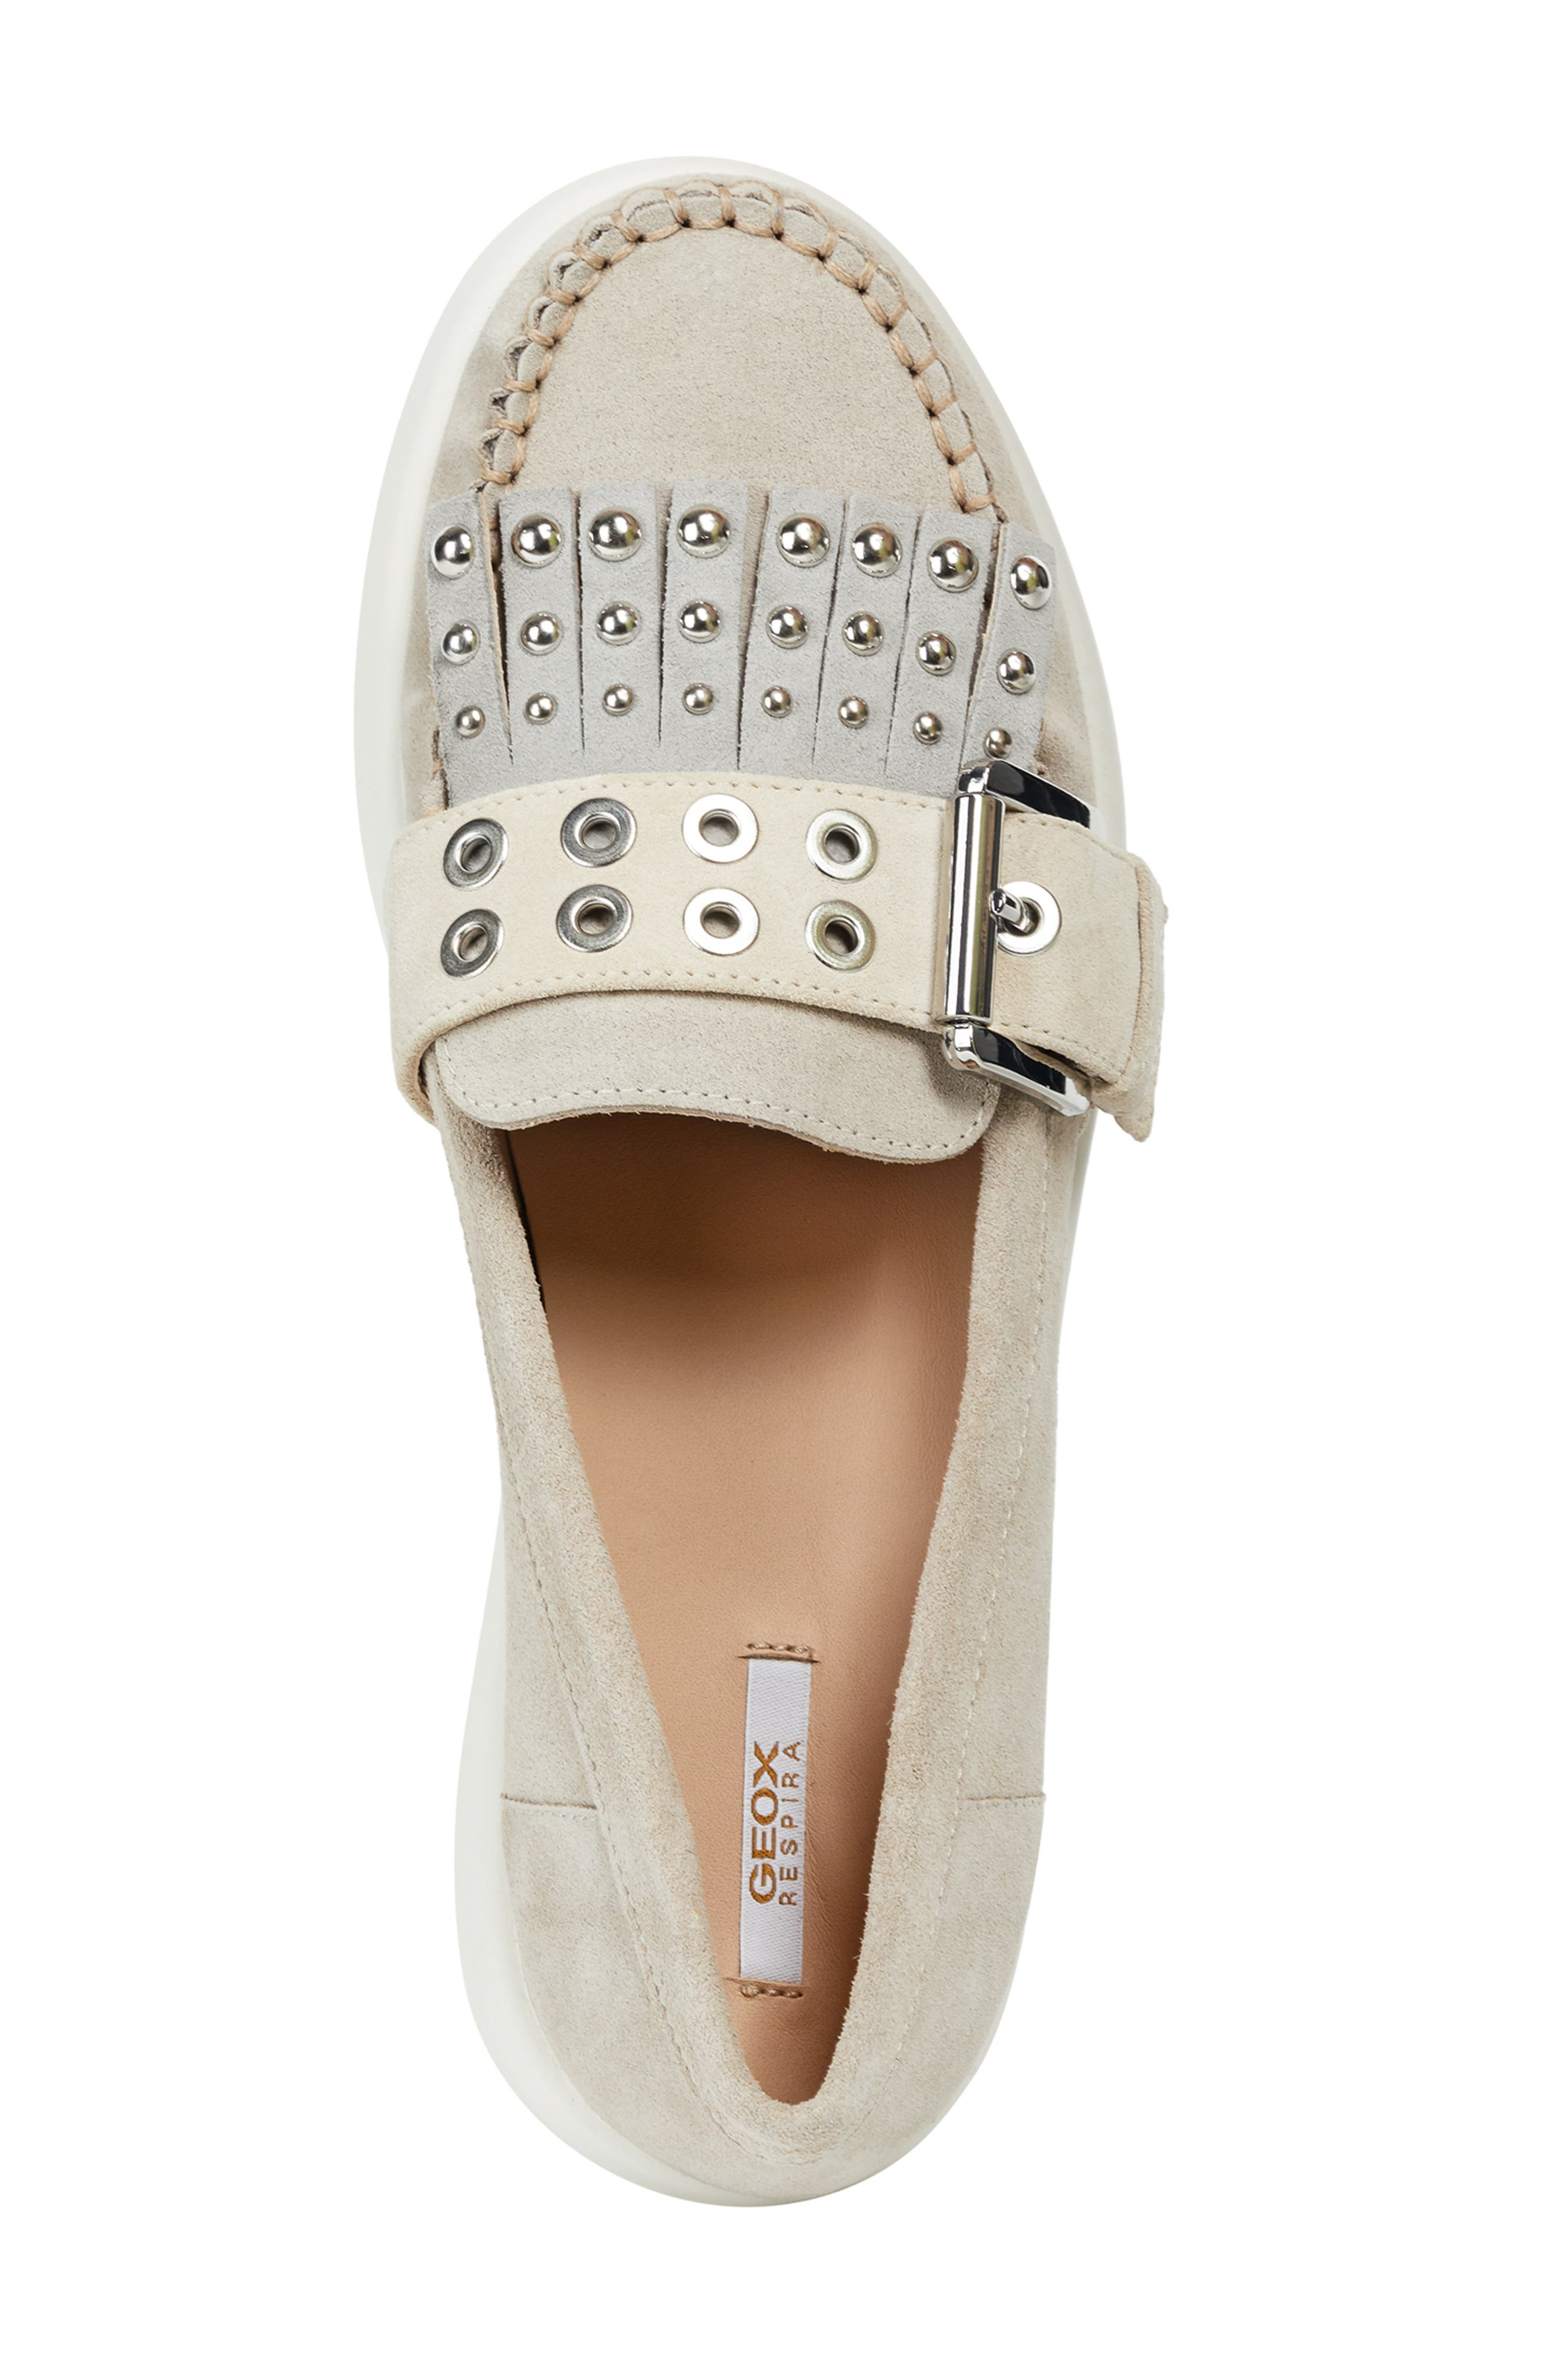 GEOX, Wimbley Studded Kiltie Loafer, Alternate thumbnail 5, color, LIGHT TAUPE/ GREY SUEDE